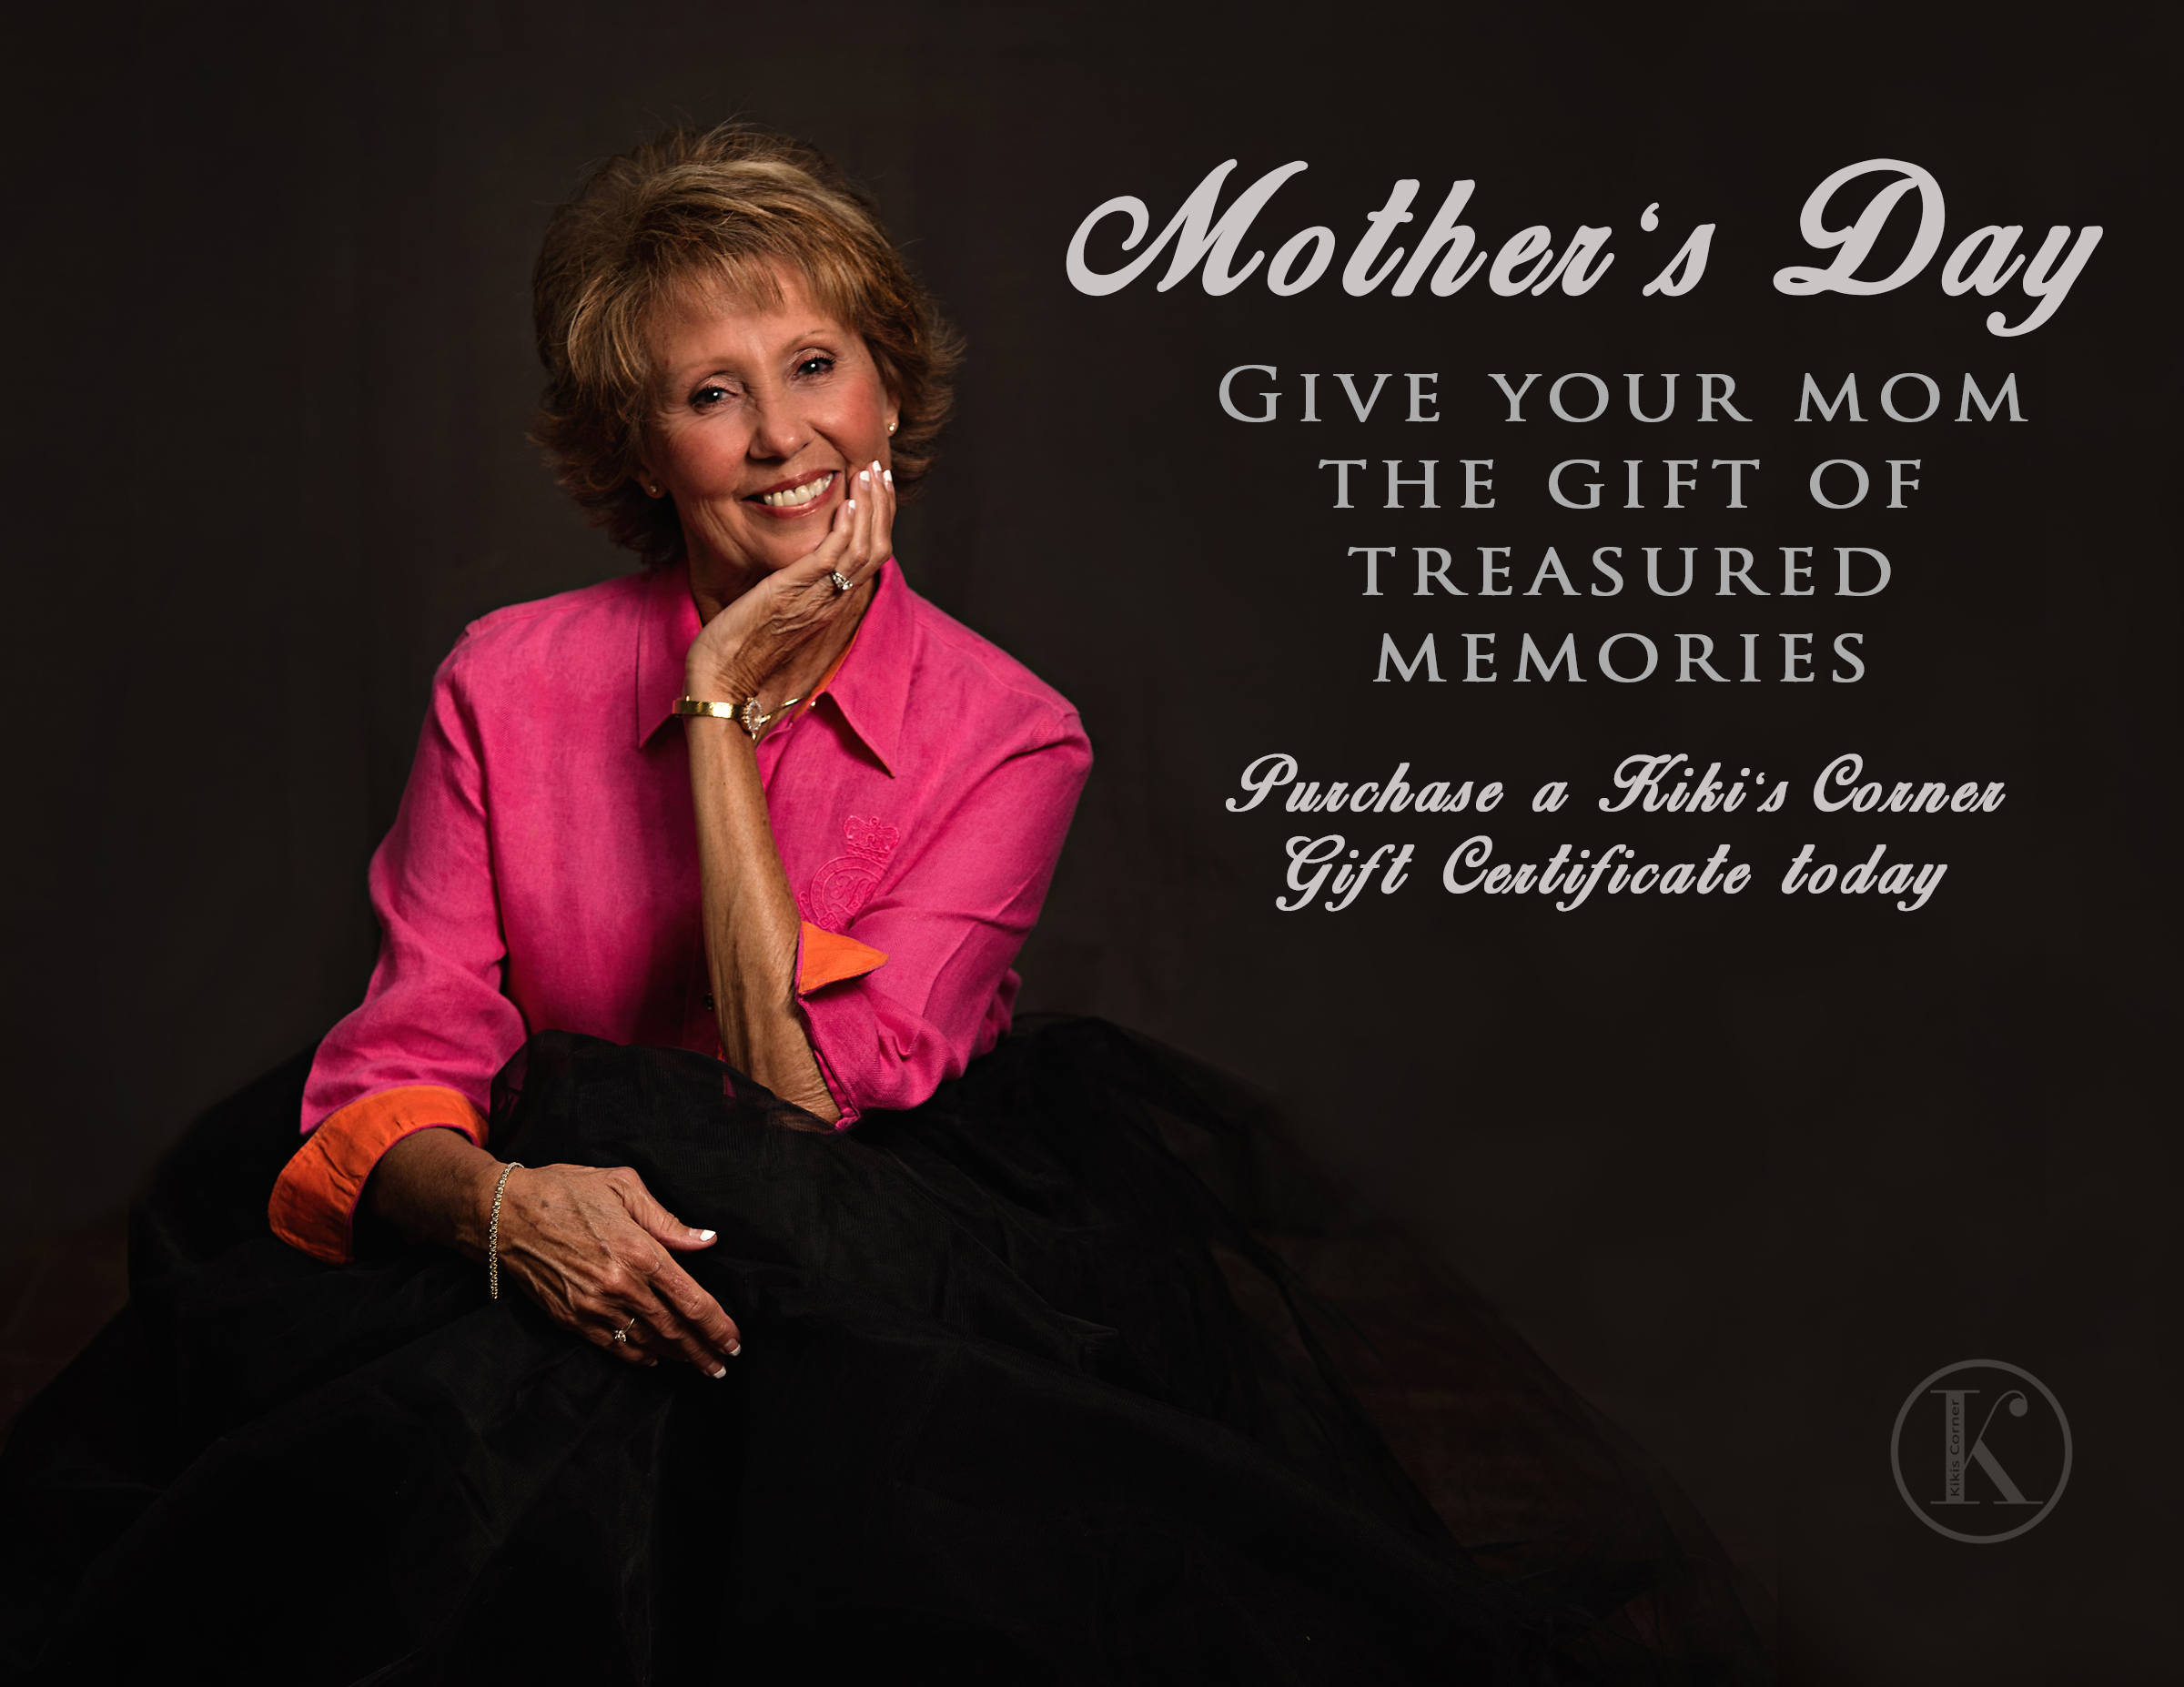 This is my beautiful mom! I treasure this portrait of her and the fun memories we made during this session.